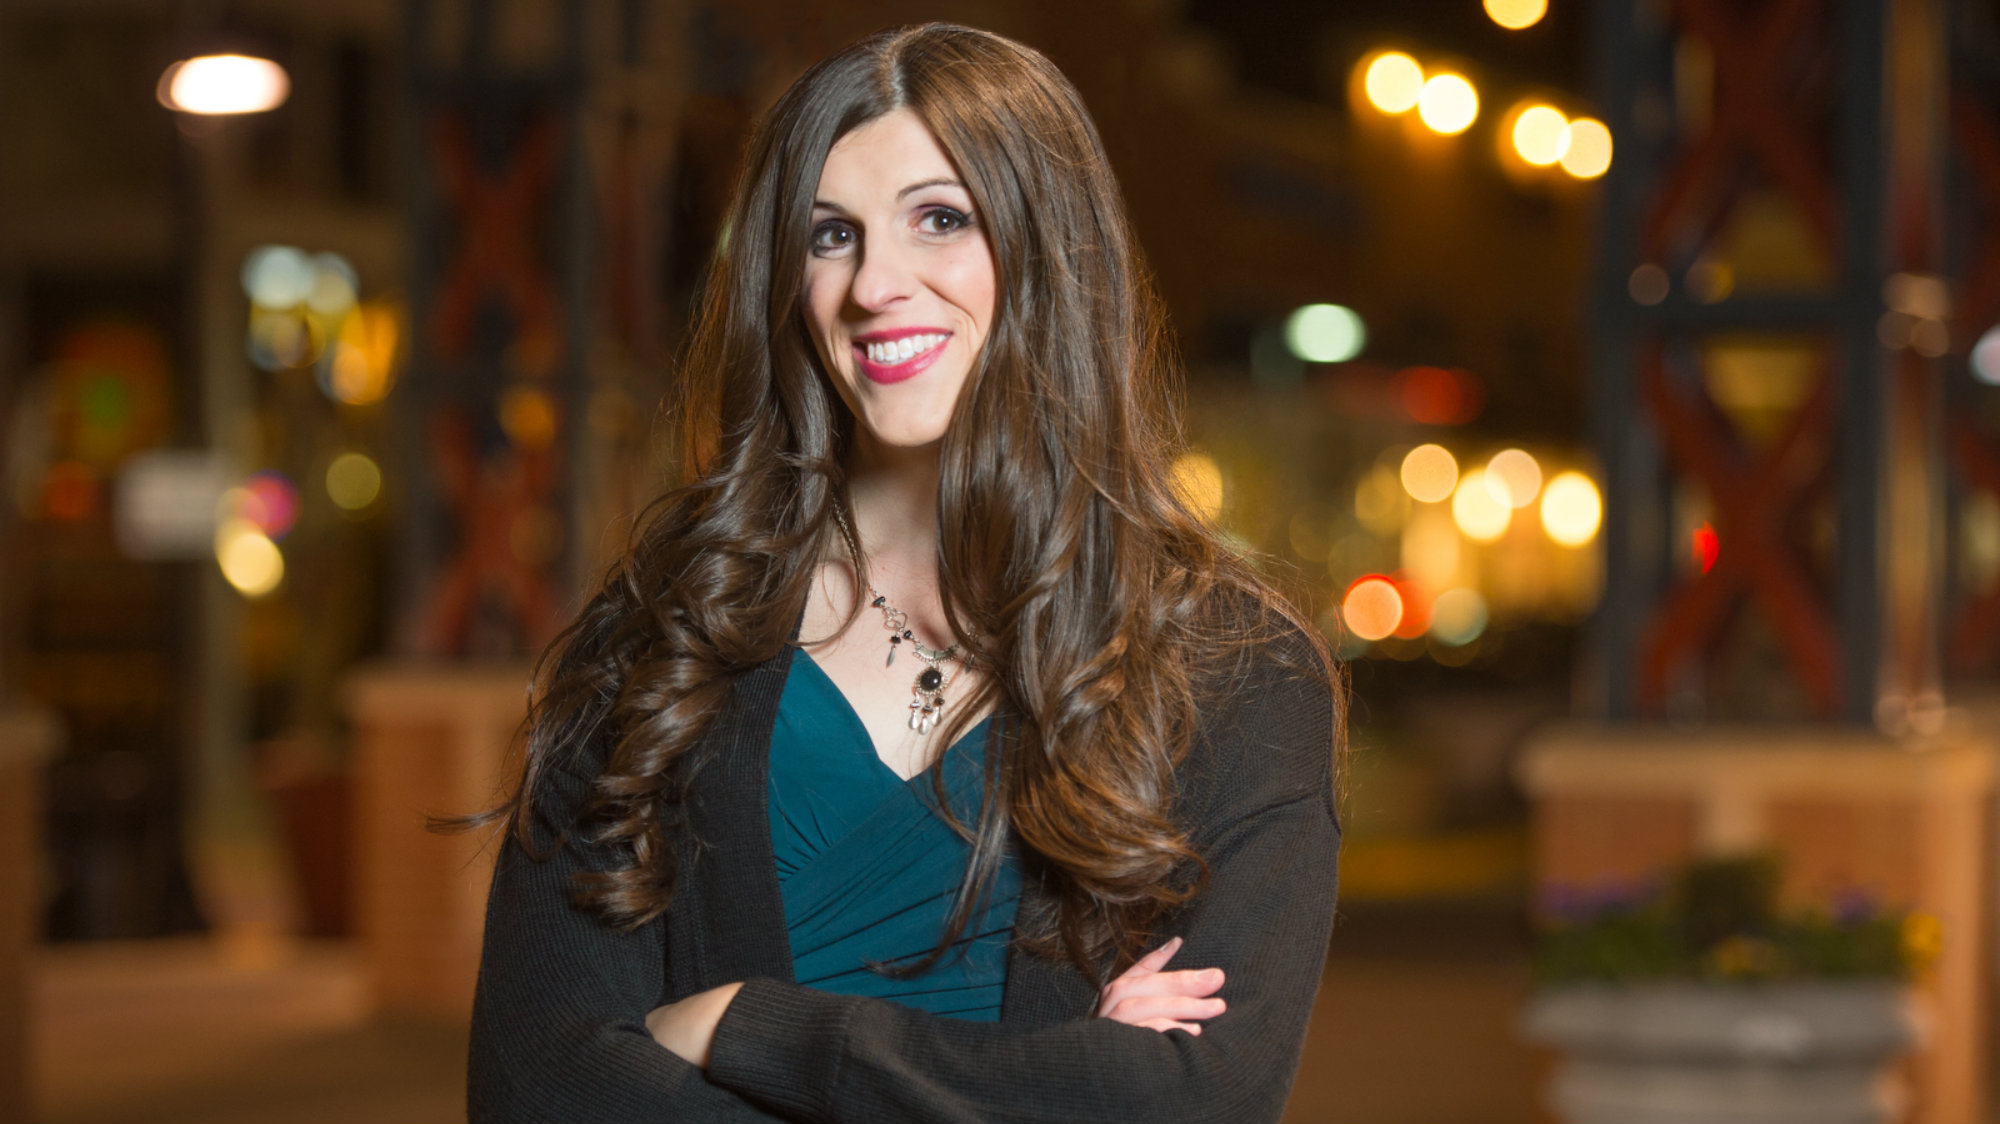 Danica Roem elected Virginia's first openly transgender official